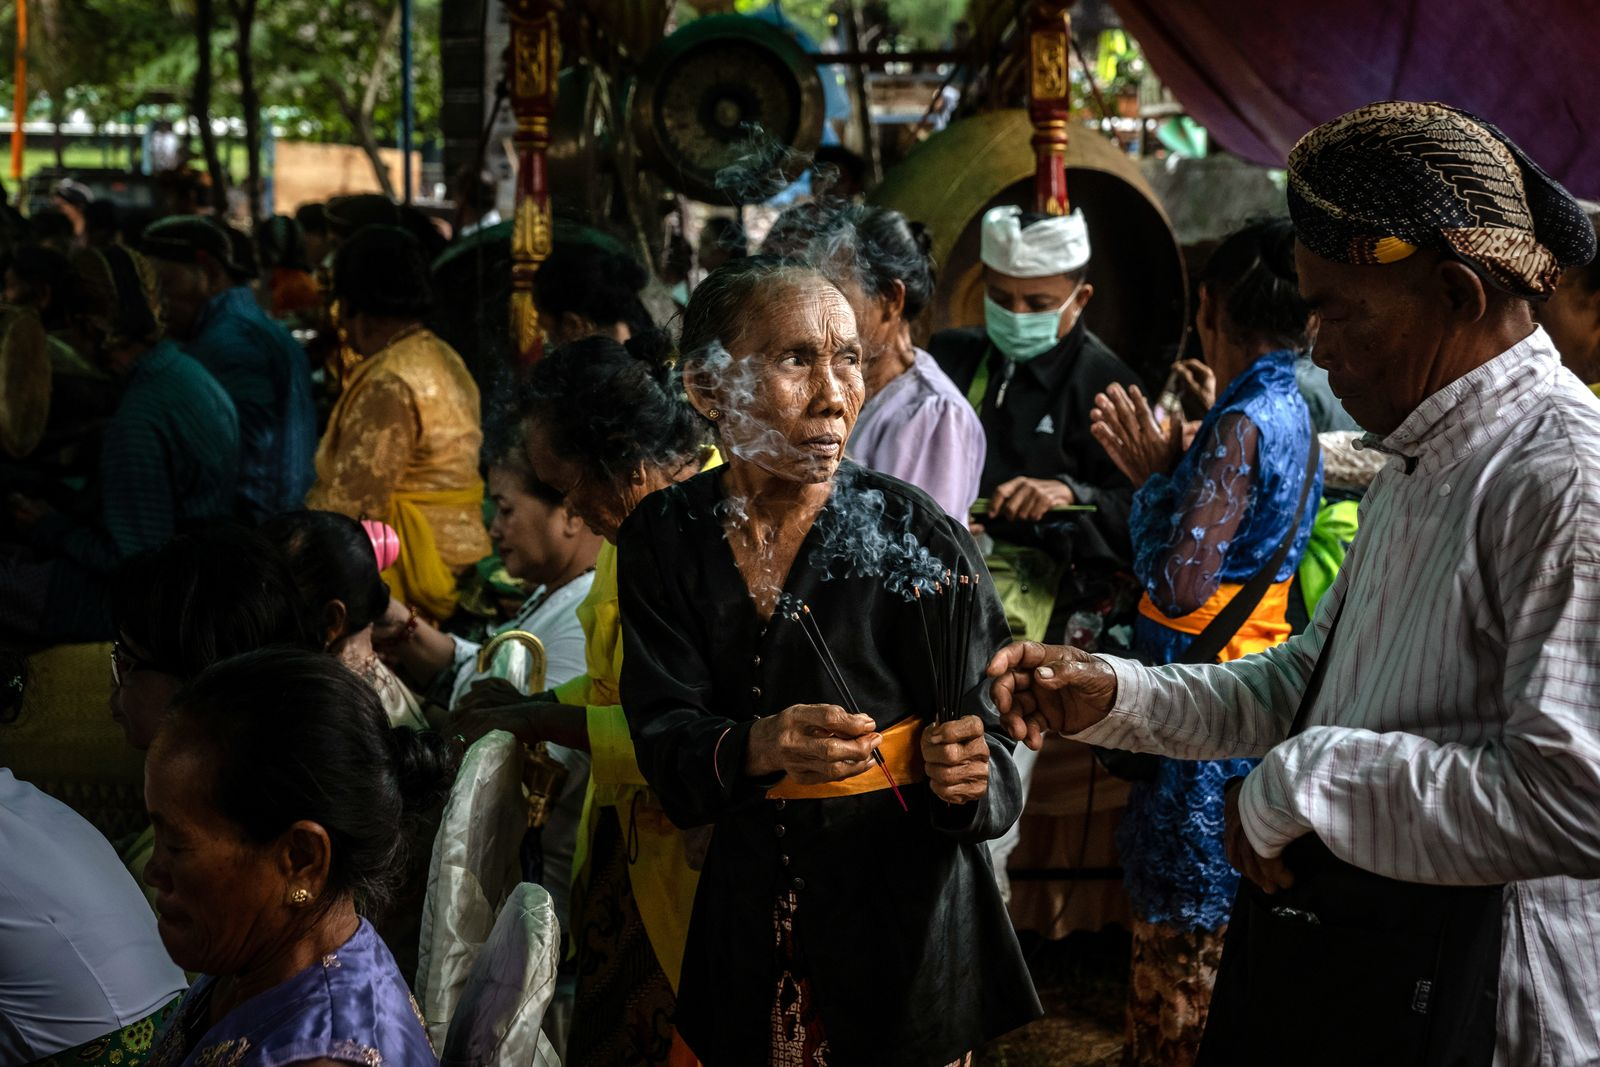 Hindus Gather For The Melasti Ceremony In Indonesia